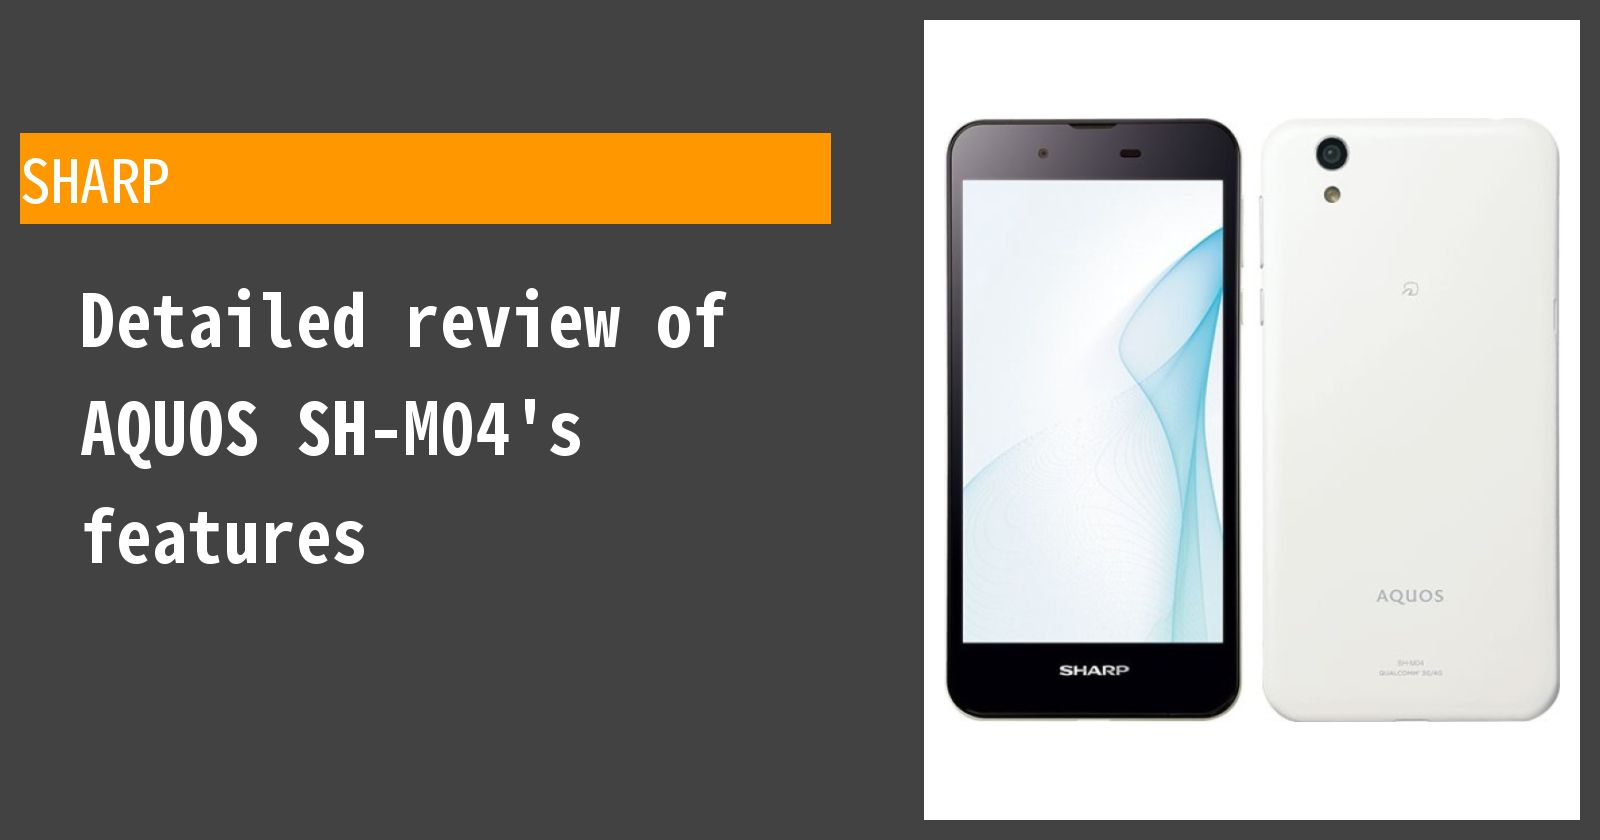 Detailed review of AQUOS SH-M04's features